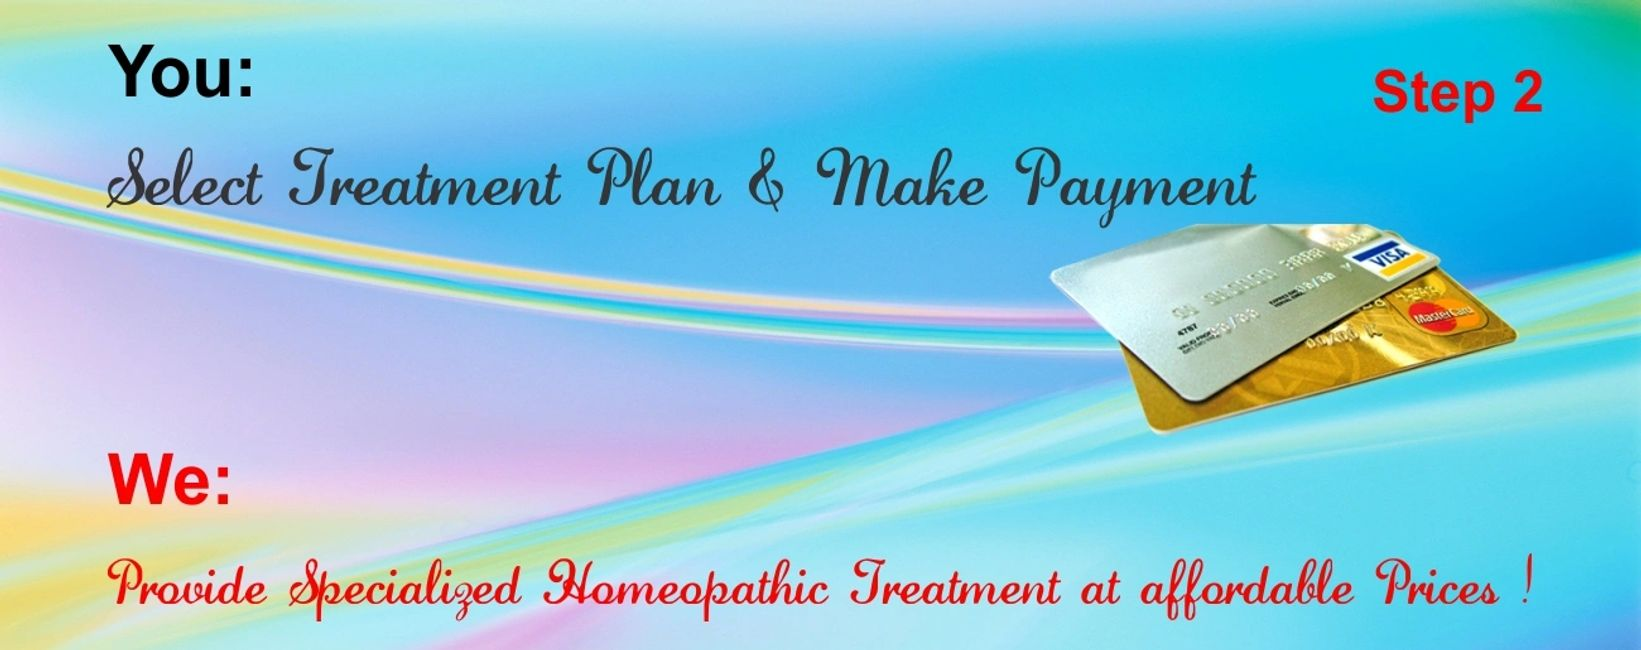 You Select Treatment Plan and we Provide Specialized  Homeopathic Treatment at affordable prices.